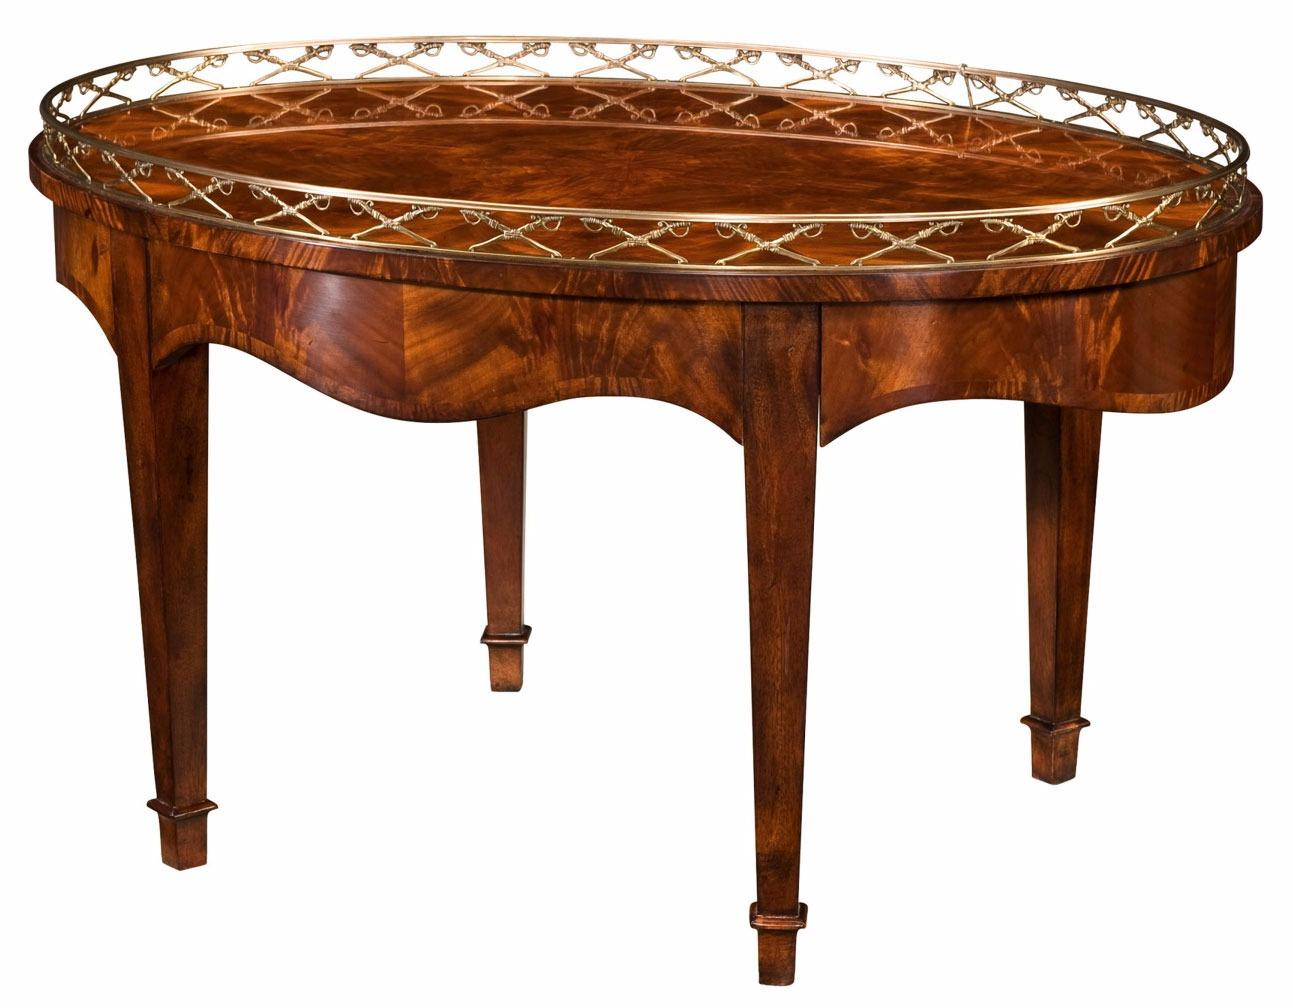 A mahogany cocktail table